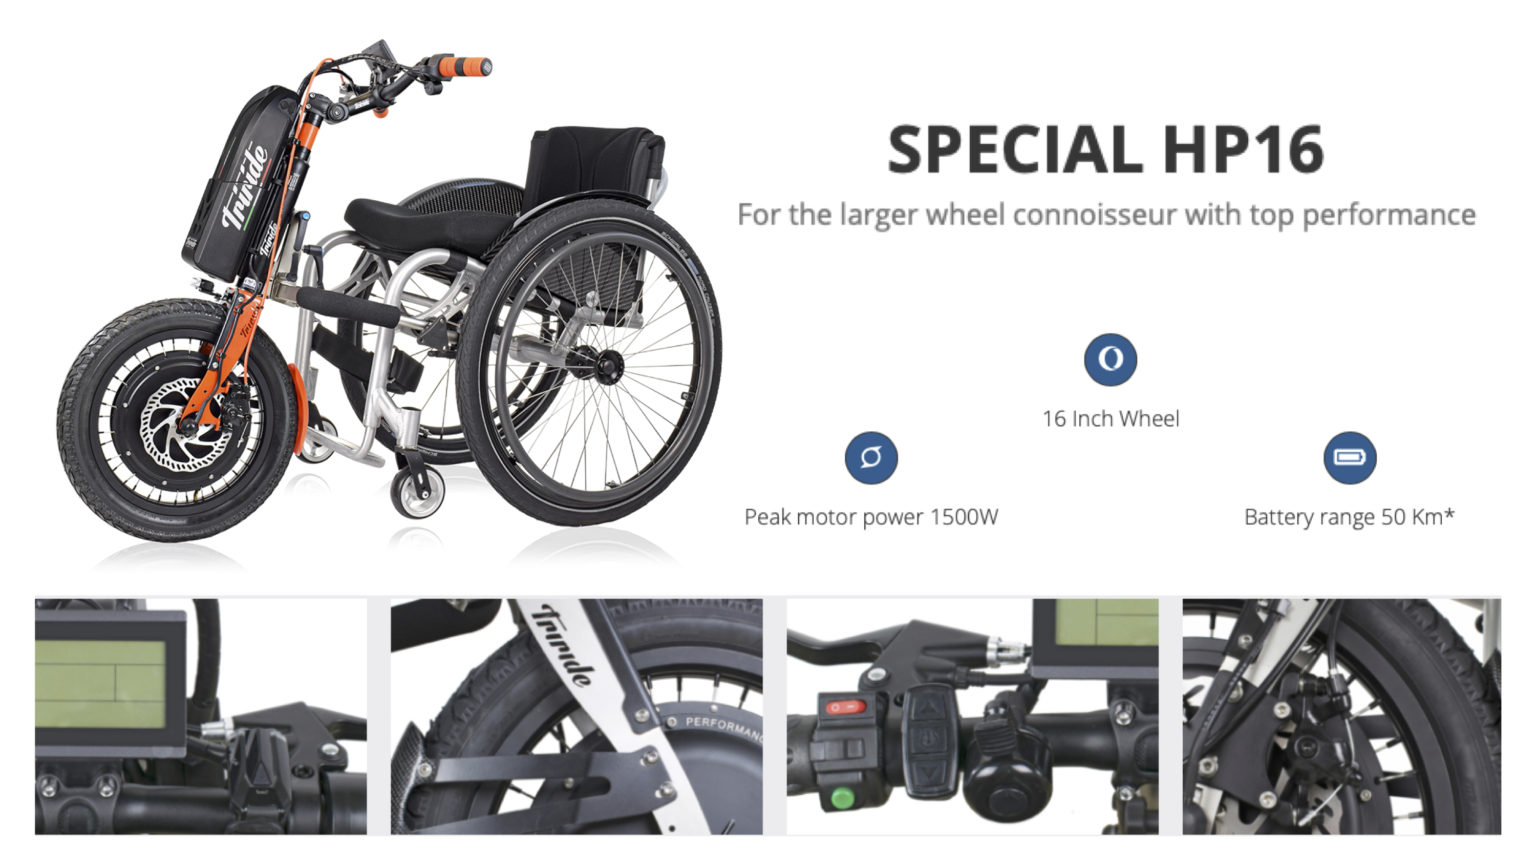 Various images showing the different features of the 'Special HP16' powered wheelchair attachment.